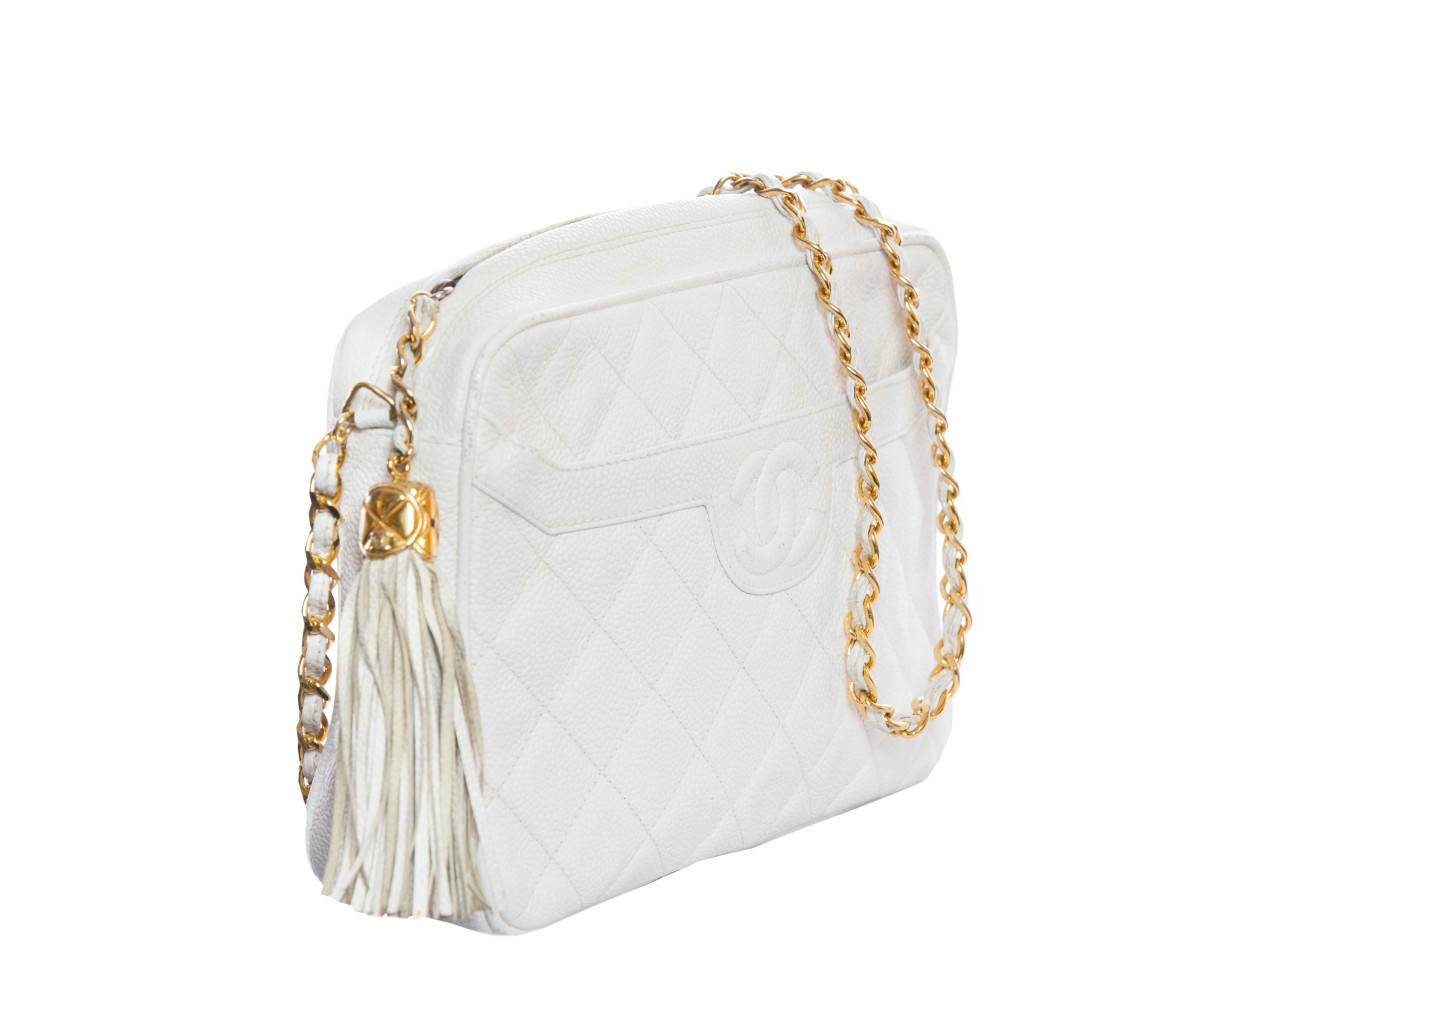 Beautiful white Chanel handbag with stitching and tassel